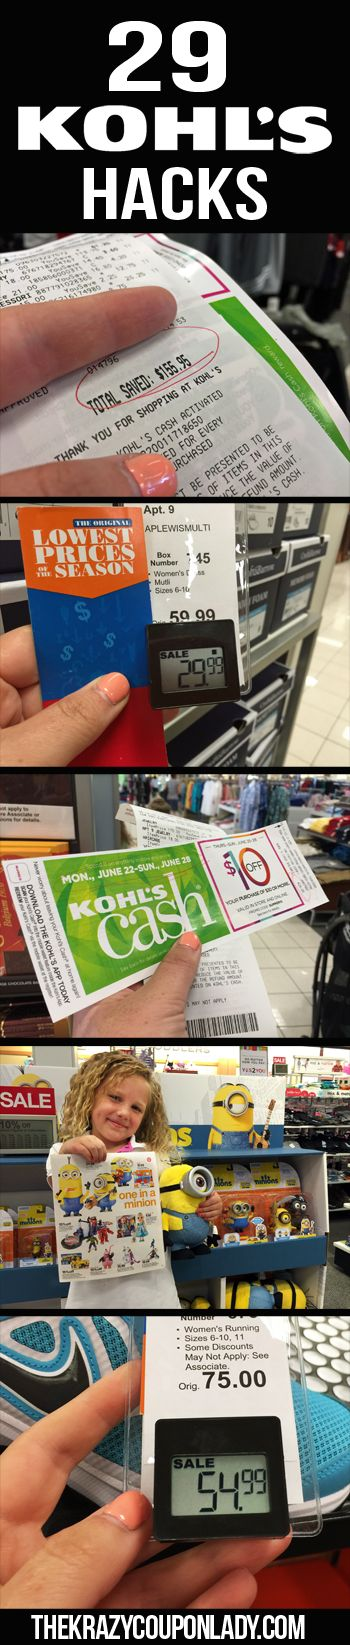 29+Genius+(and+Accurate!)+Kohl's+Shopping+Hacks